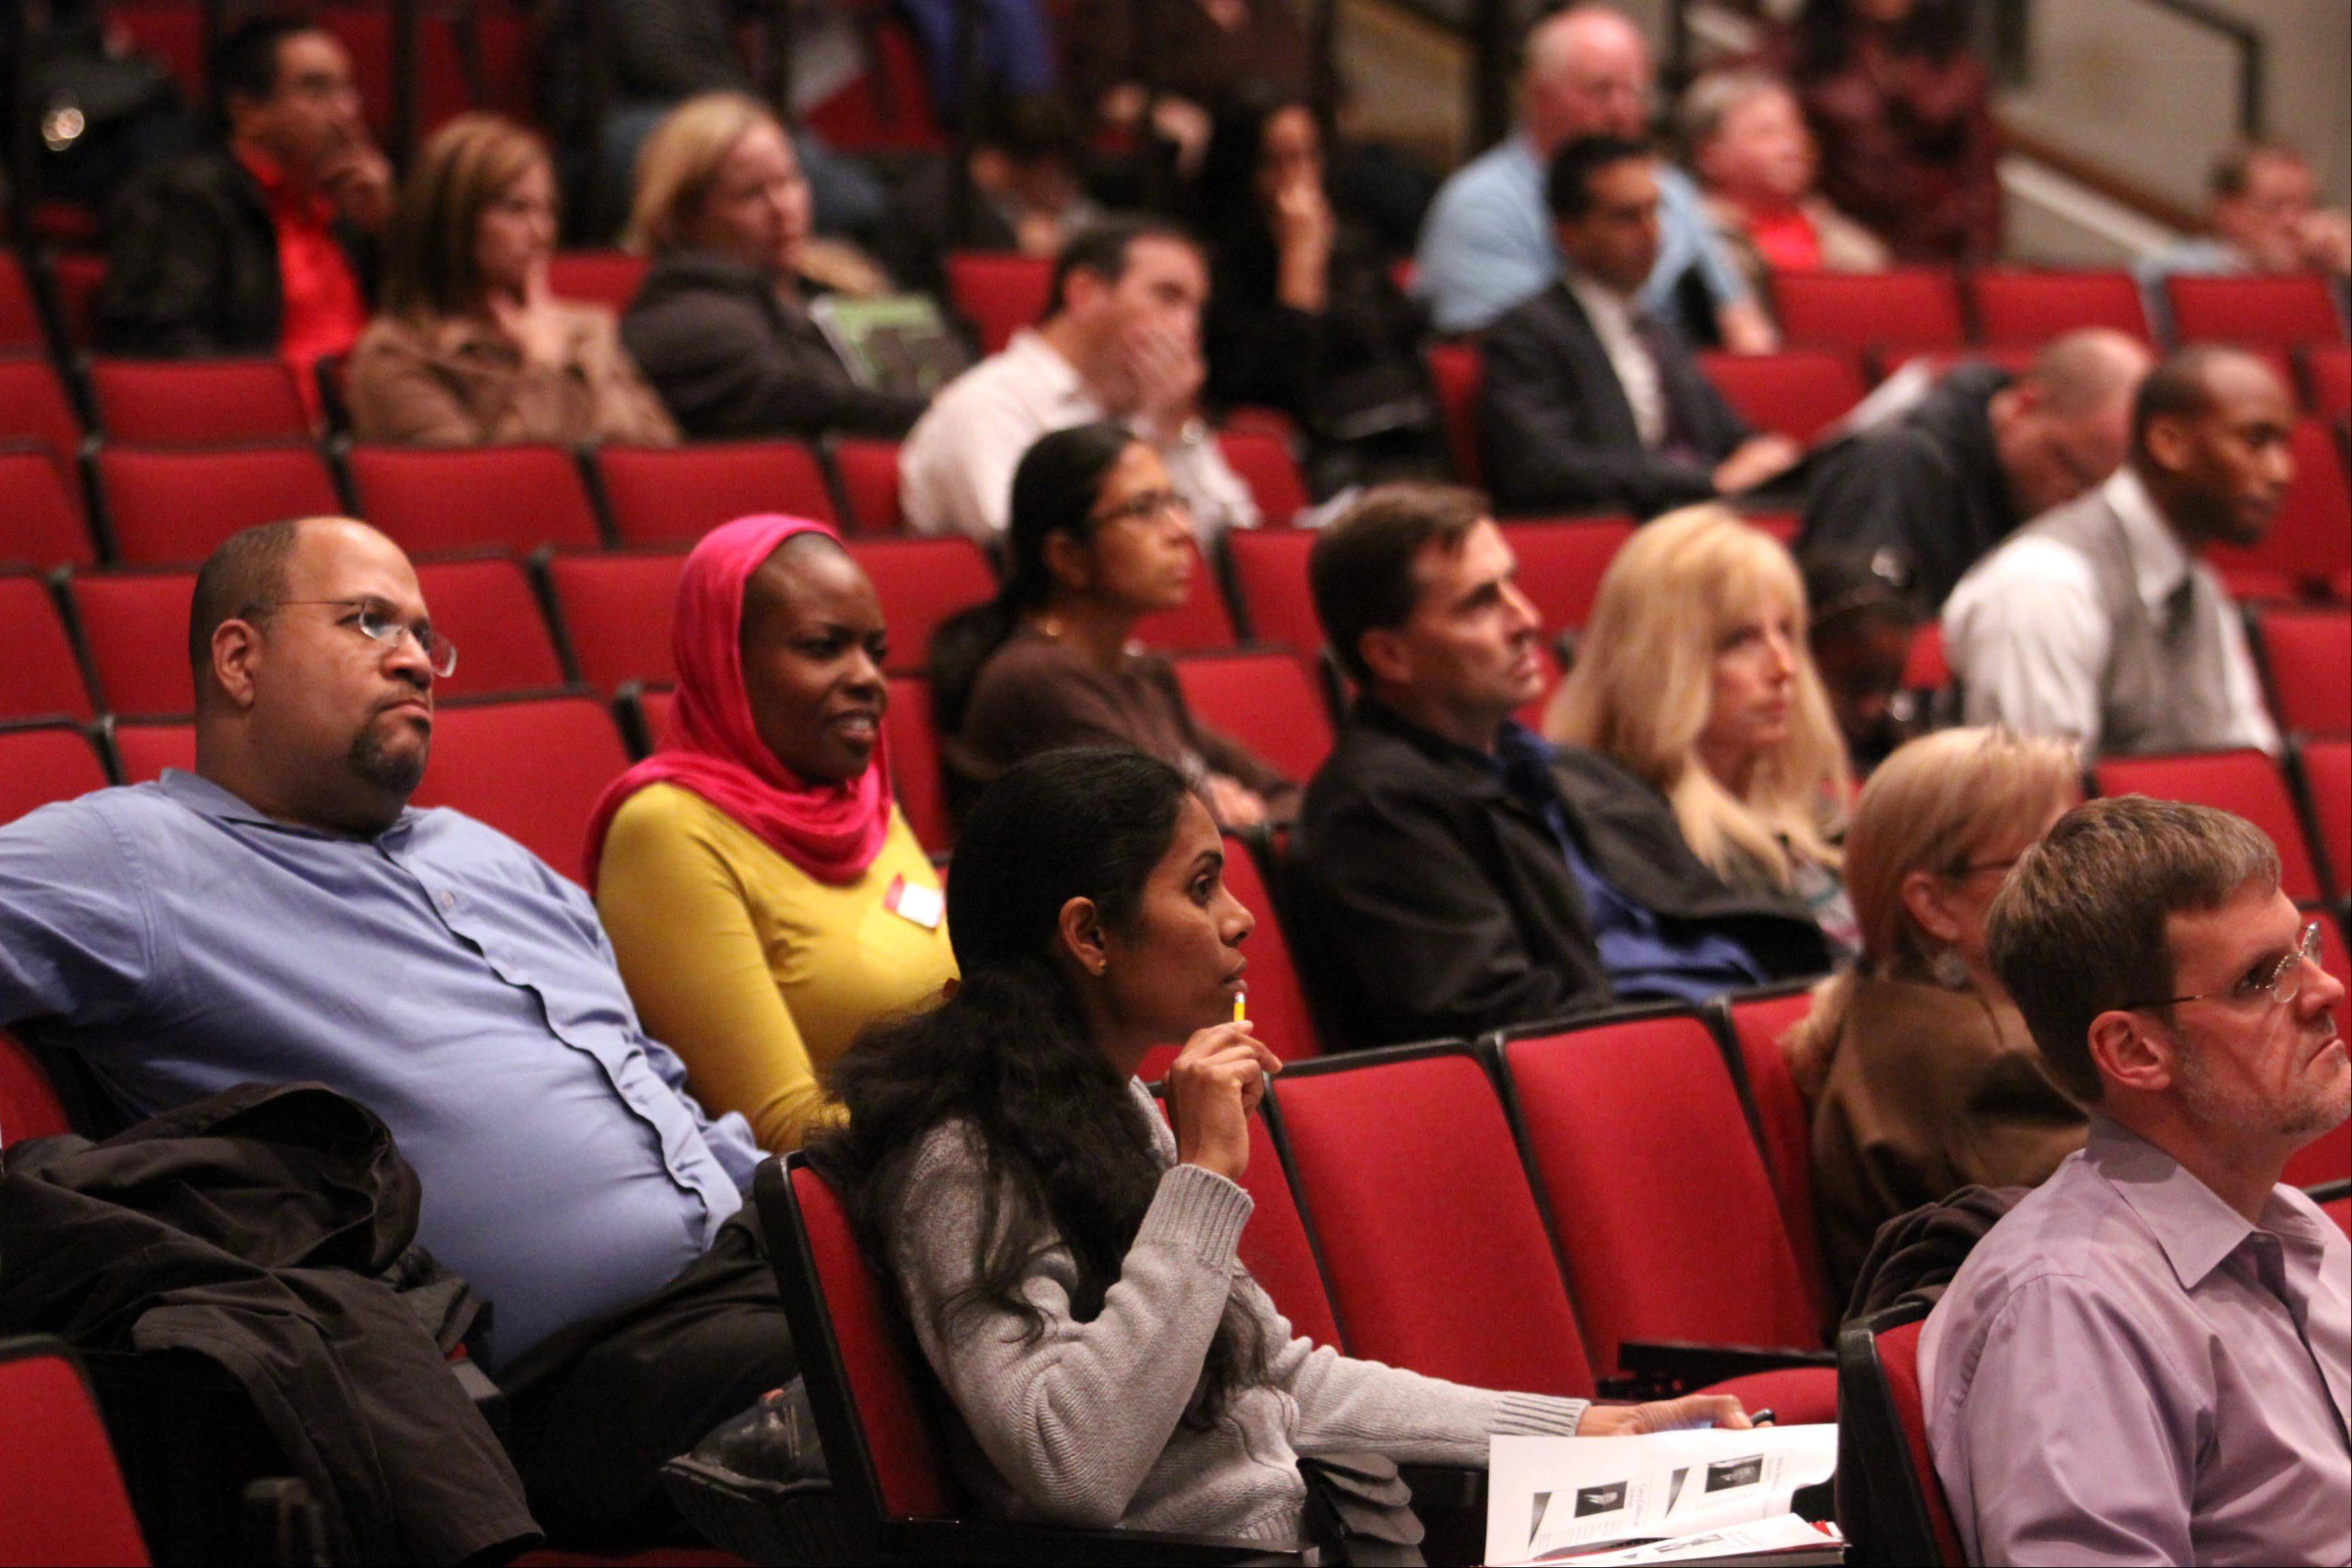 Audience members listen during a general election forum at Elgin High School on Thursday night.